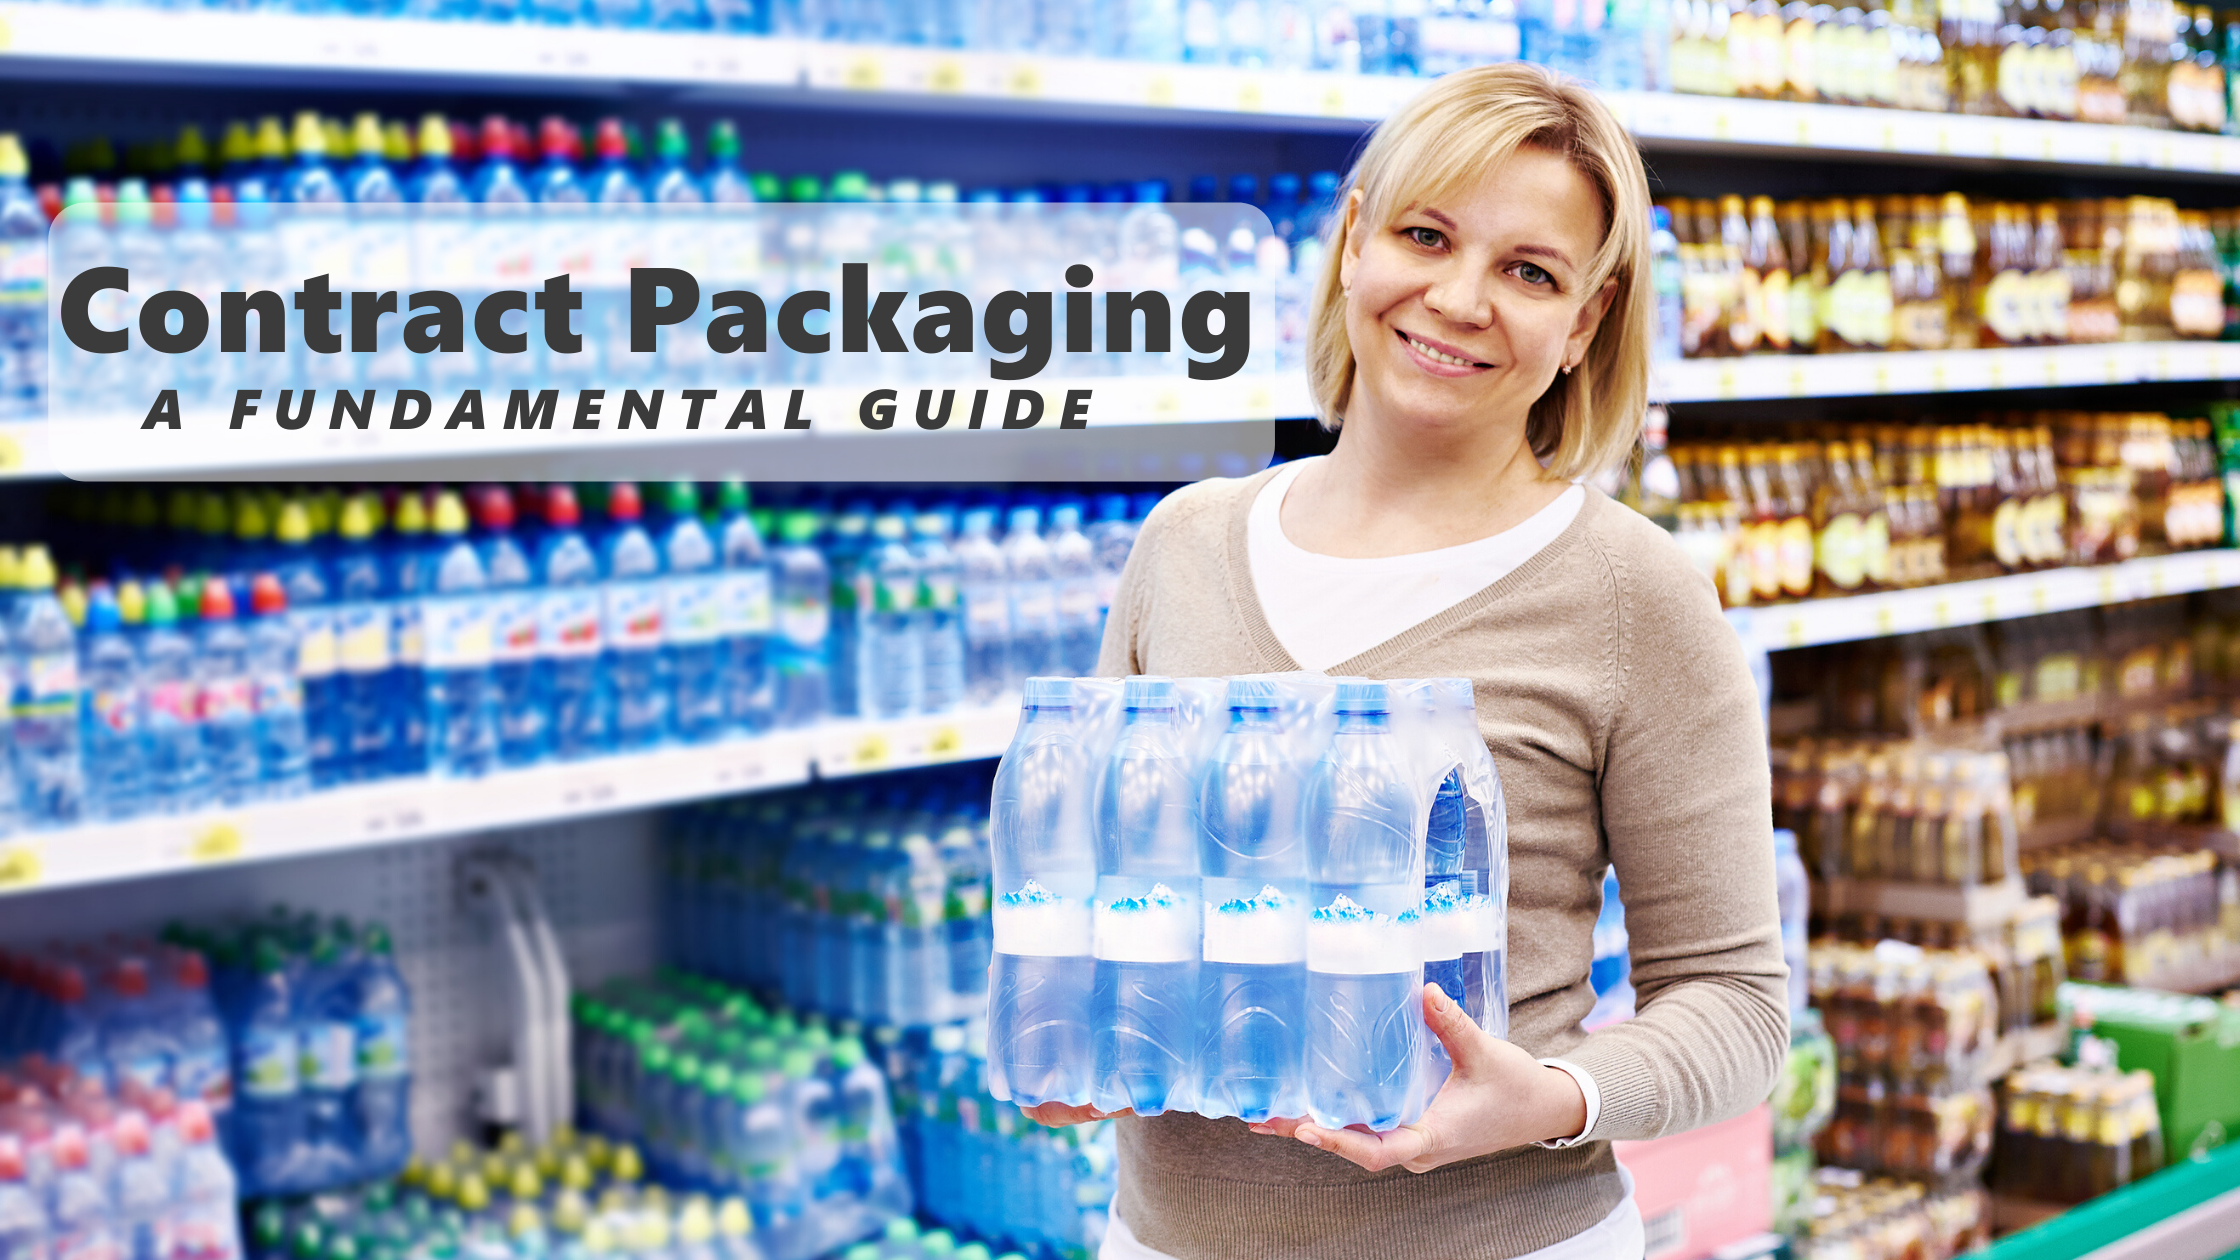 A-Fundamental-Guide-to-Contract-Packaging-Services-woman-holding-plastic-wrapped-case-of-bottled-water-in-front-of-shelves-of-packaged-beverage-bottles